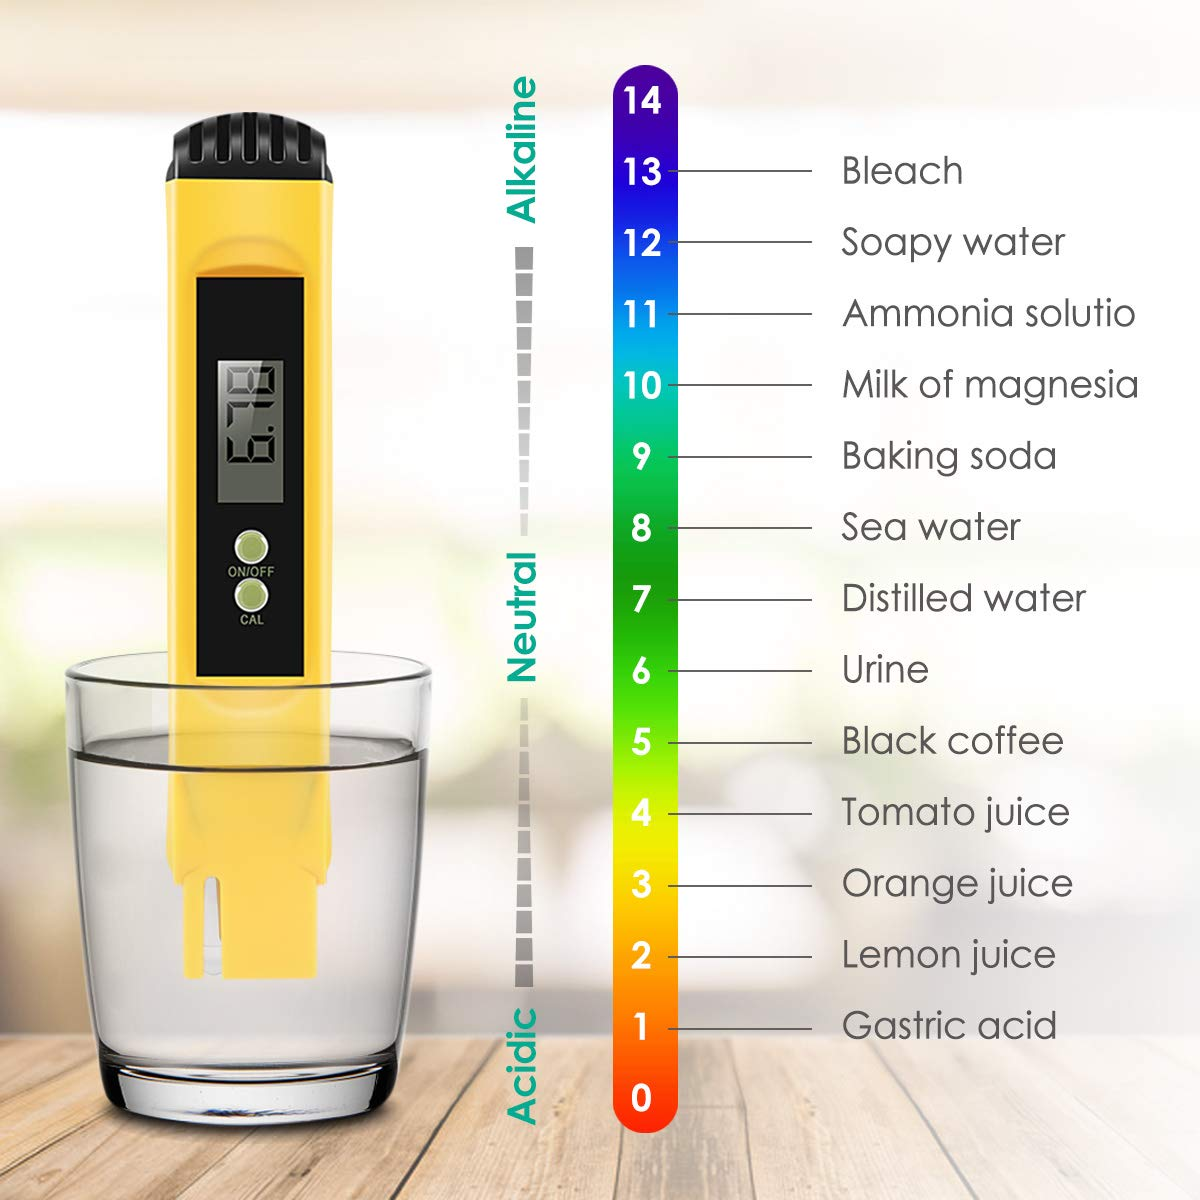 Amazon.com: Digital PH Meter, VANTAKOOL PH Meter 0.01 PH High Accuracy Water Quality Tester with 0-14 PH Measurement Range for Household Drinking, ...